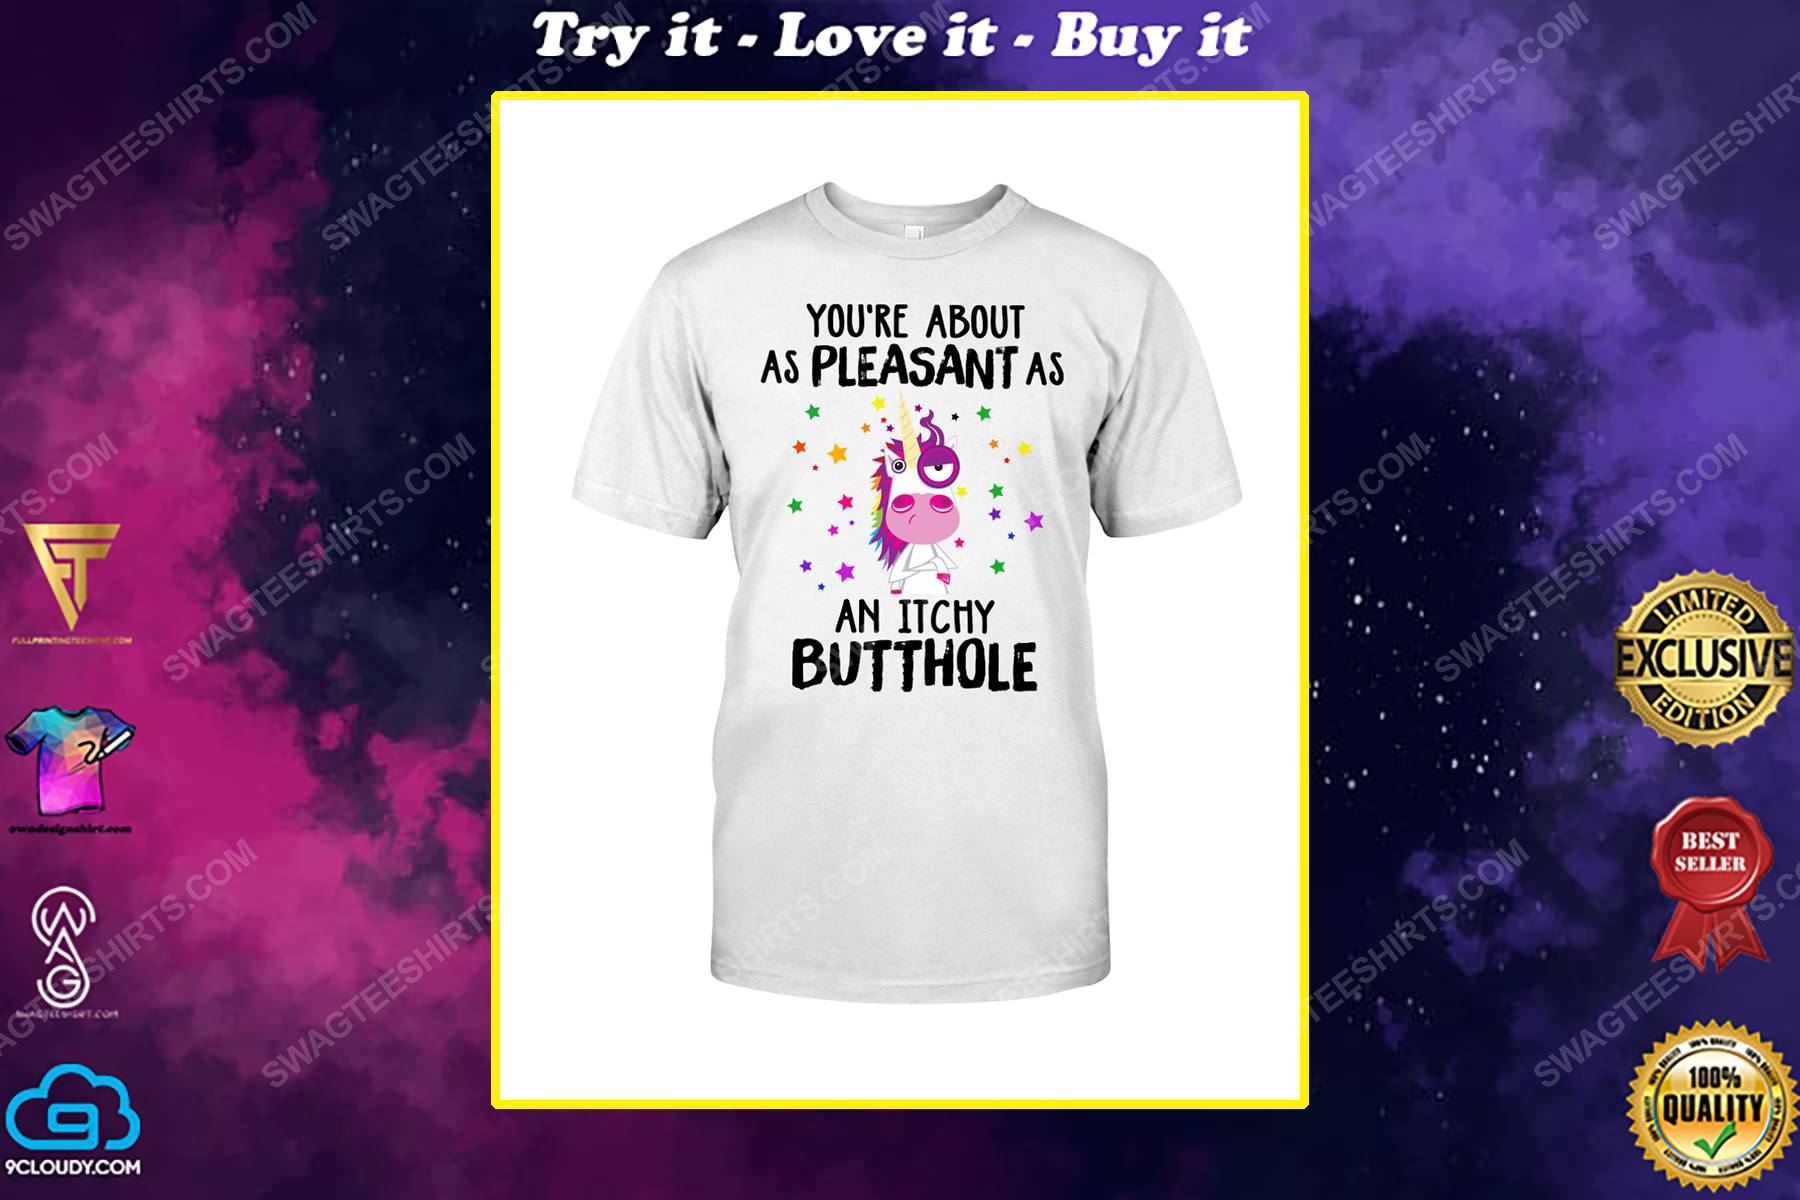 Unicorn you're about as pleasant as an itchy butthole shirt